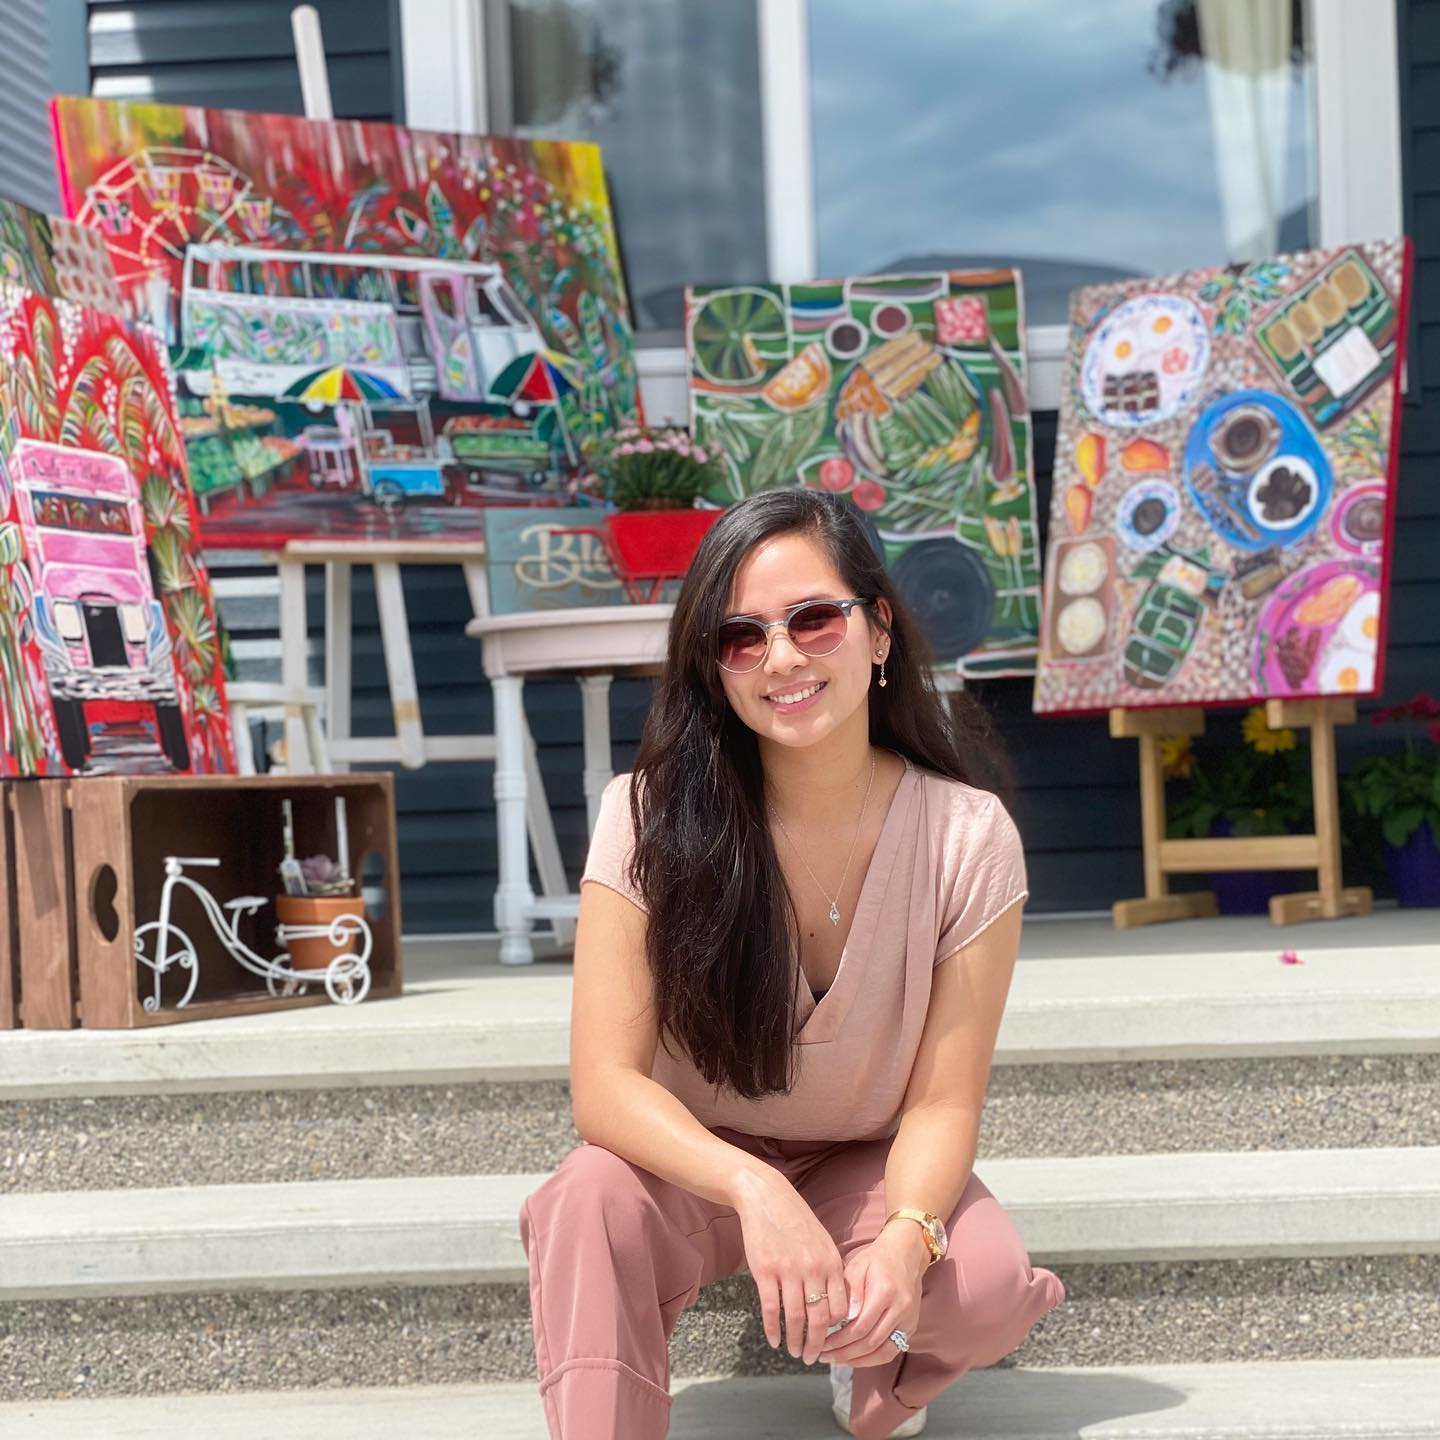 Jan Elaine Soriano on Art as an Empowerment and Stress Antidote